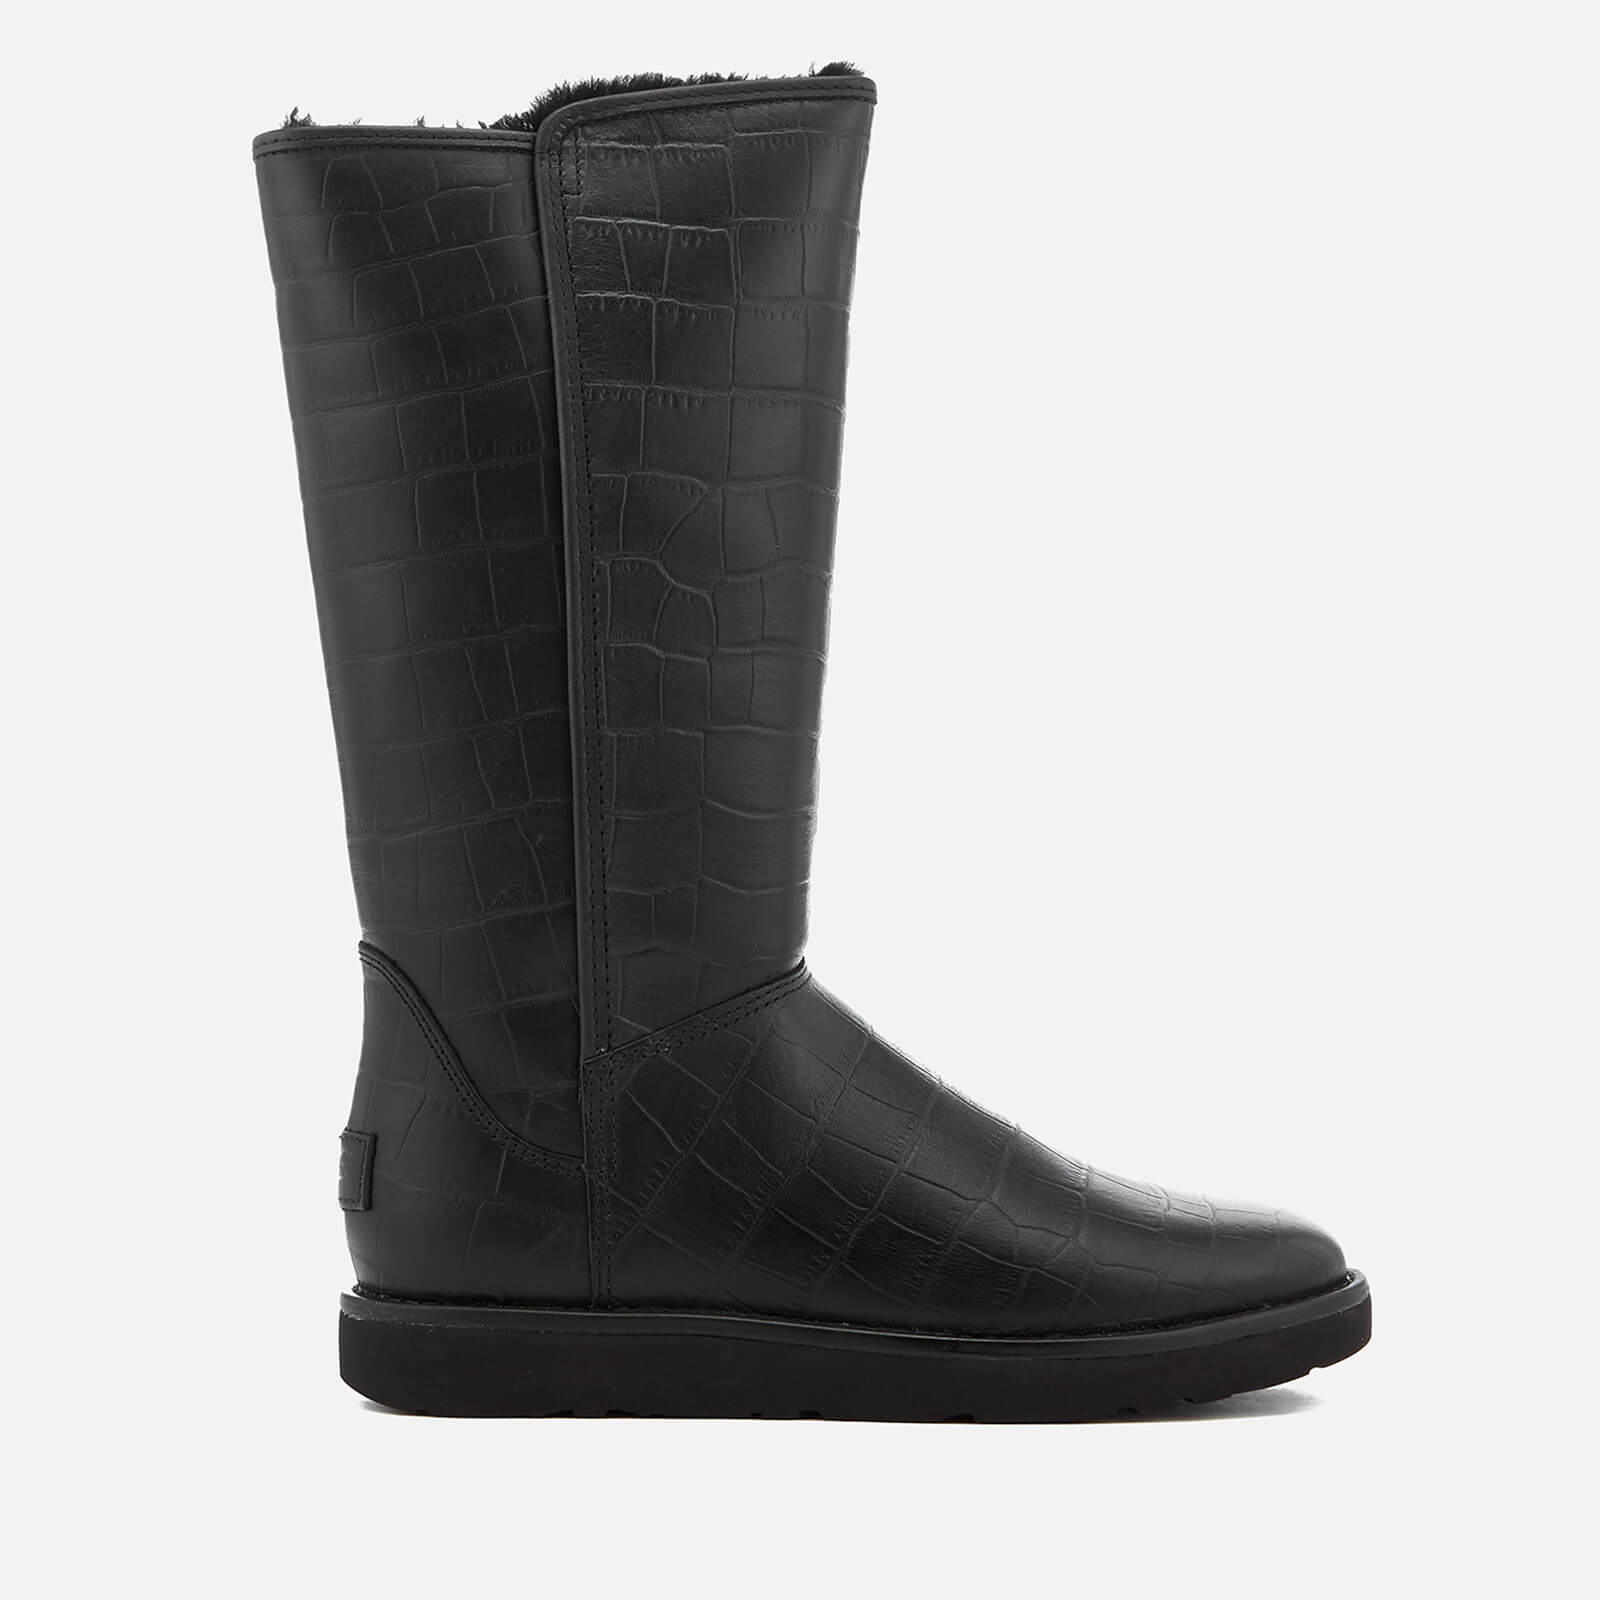 3544c0752be UGG Women's Abree II Classic Luxe Croc Leather Tall Boots - Black